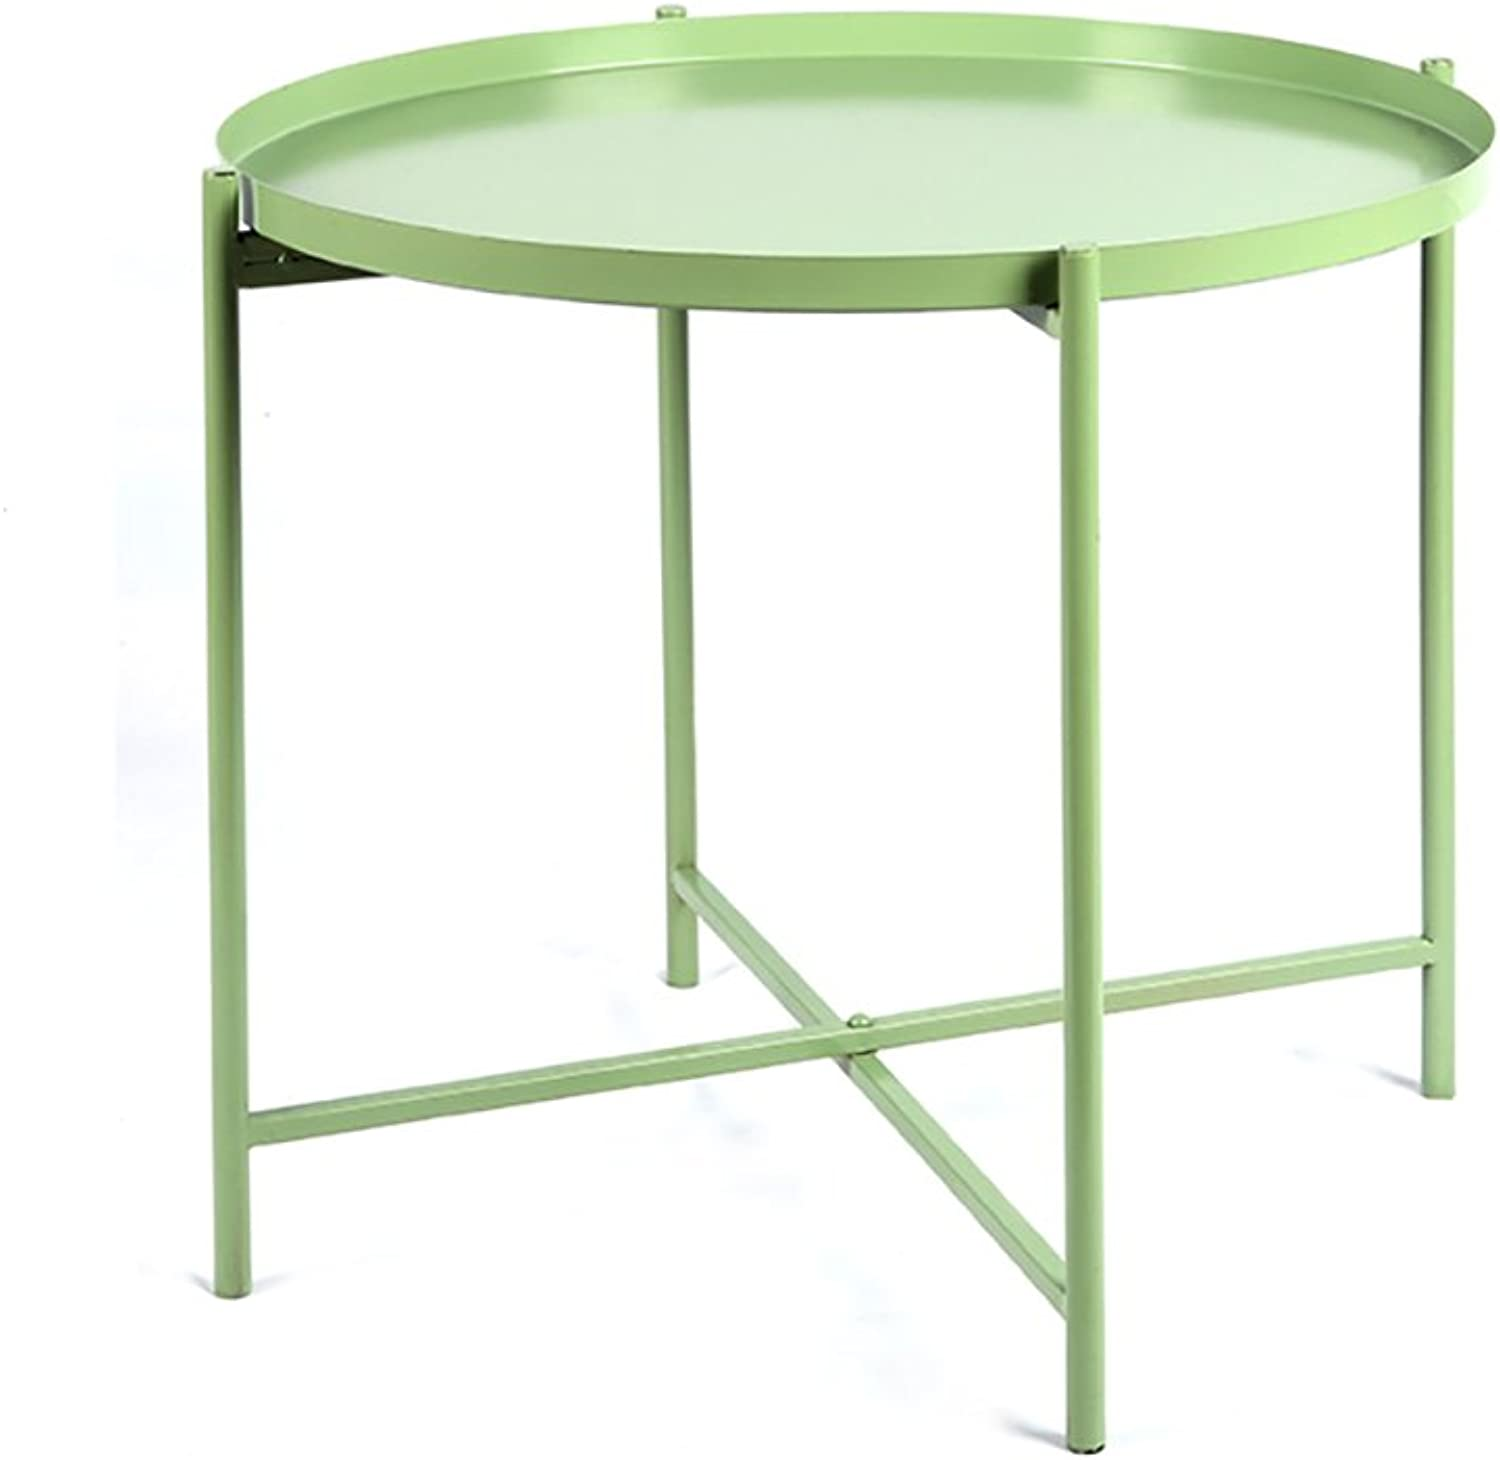 CSQ Wrought Iron Folding Small Coffee Table Sofa Corner Stylish Bedside Small Round Table Bedroom Green Yellow White golden  36-46.5cm Tea Table (color   Green, Size   B)